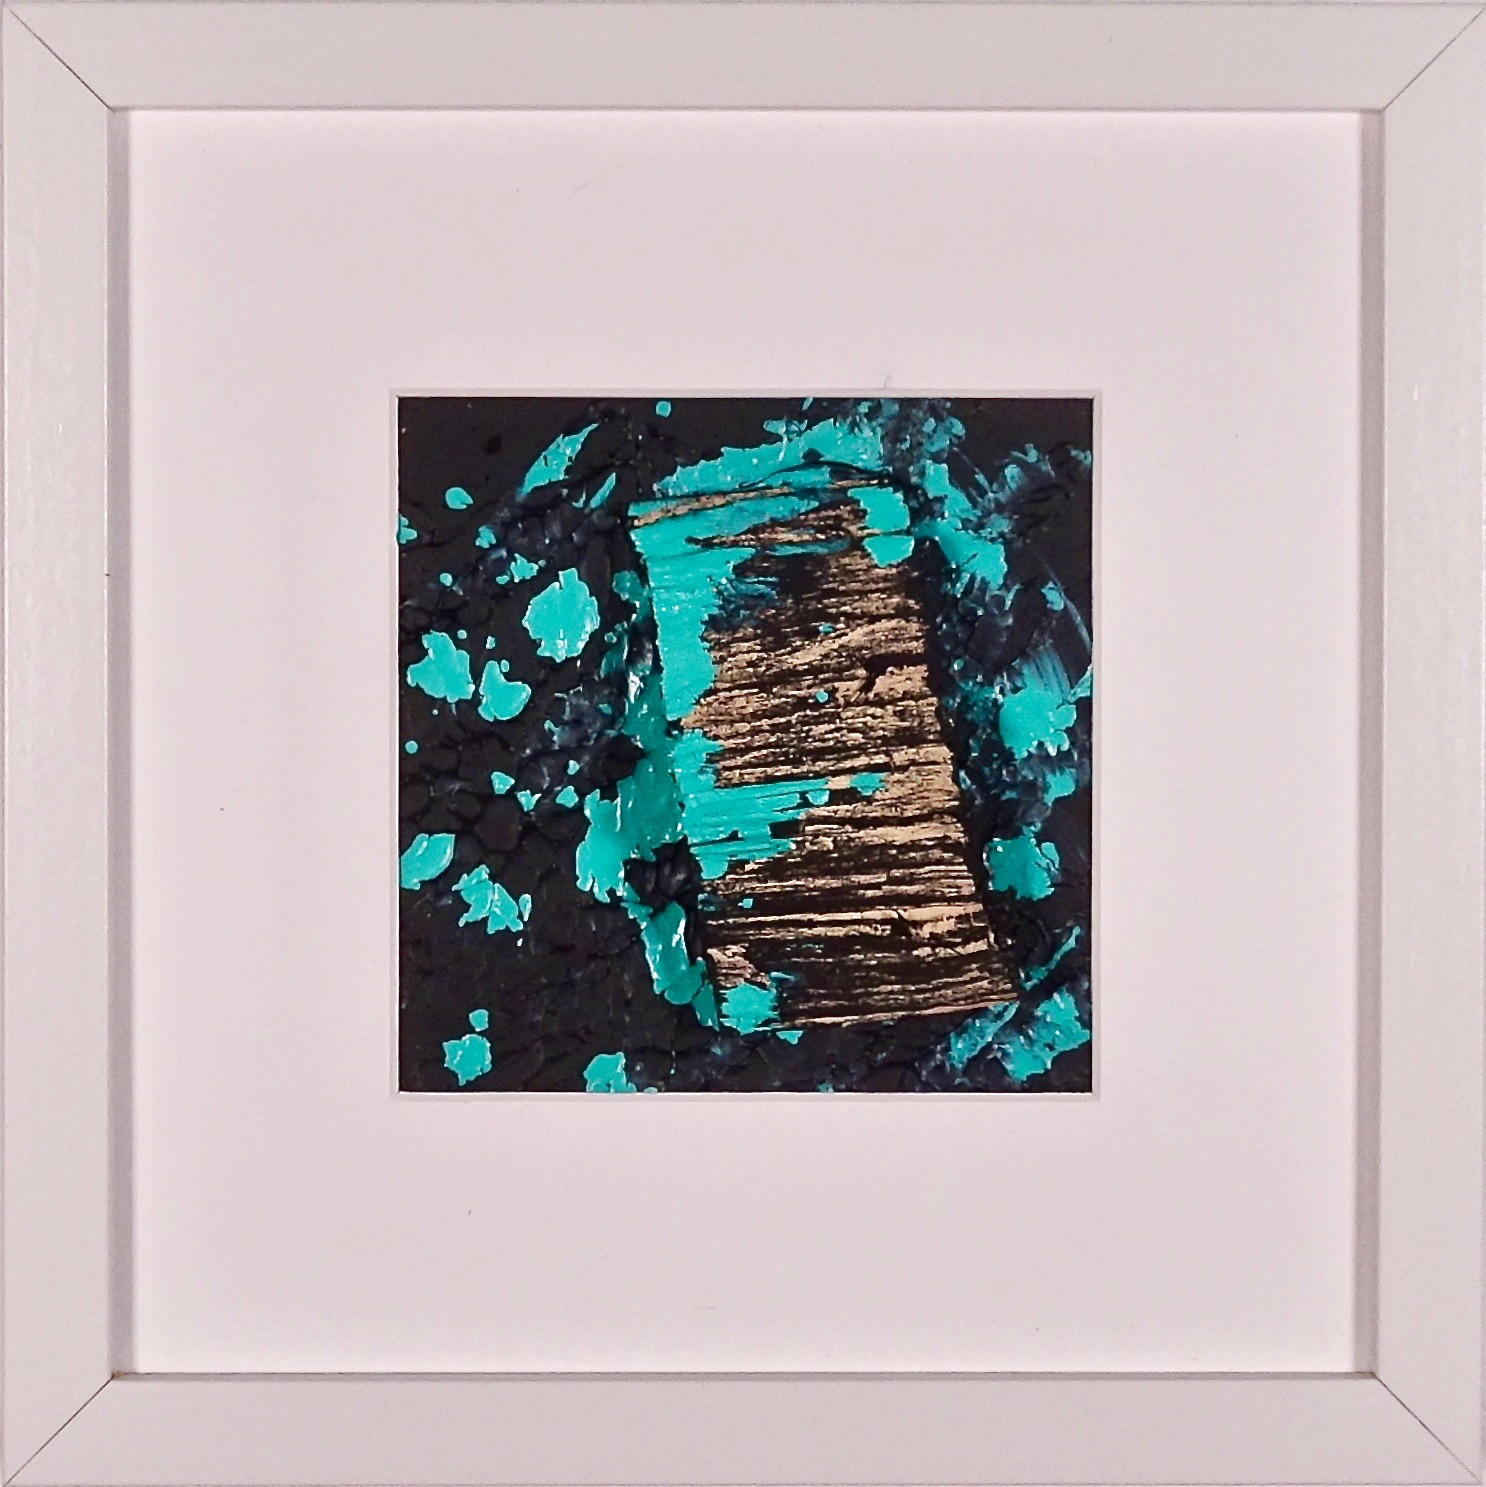 NAUFRAGIO #16 - Beached wood, acrylic, sea water on cardboard, 25x25cmm with passe-partout frame - AVAILABLE